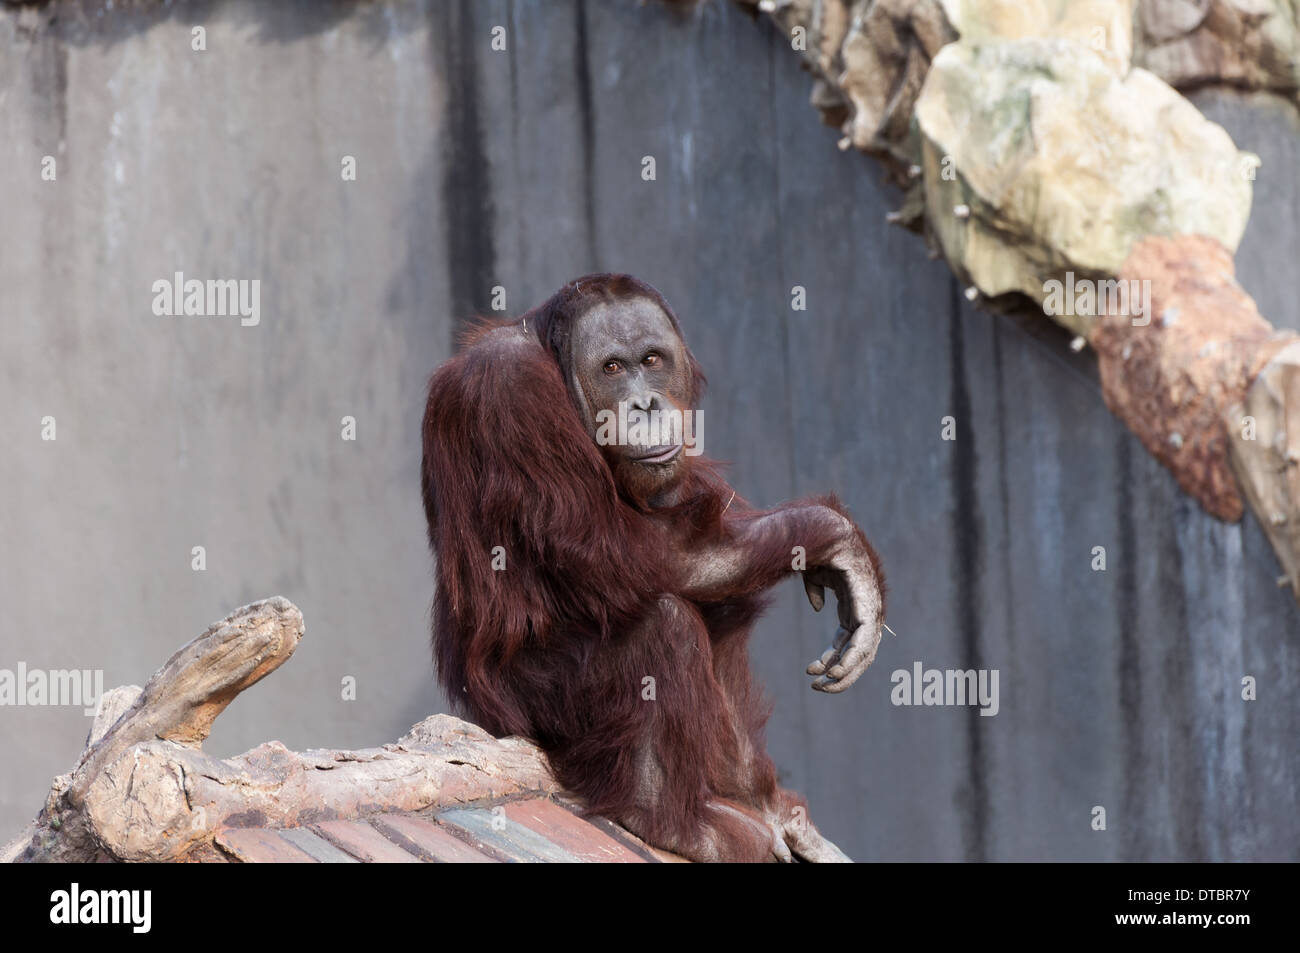 Orangutan at the Seoul Zoo. - Stock Image